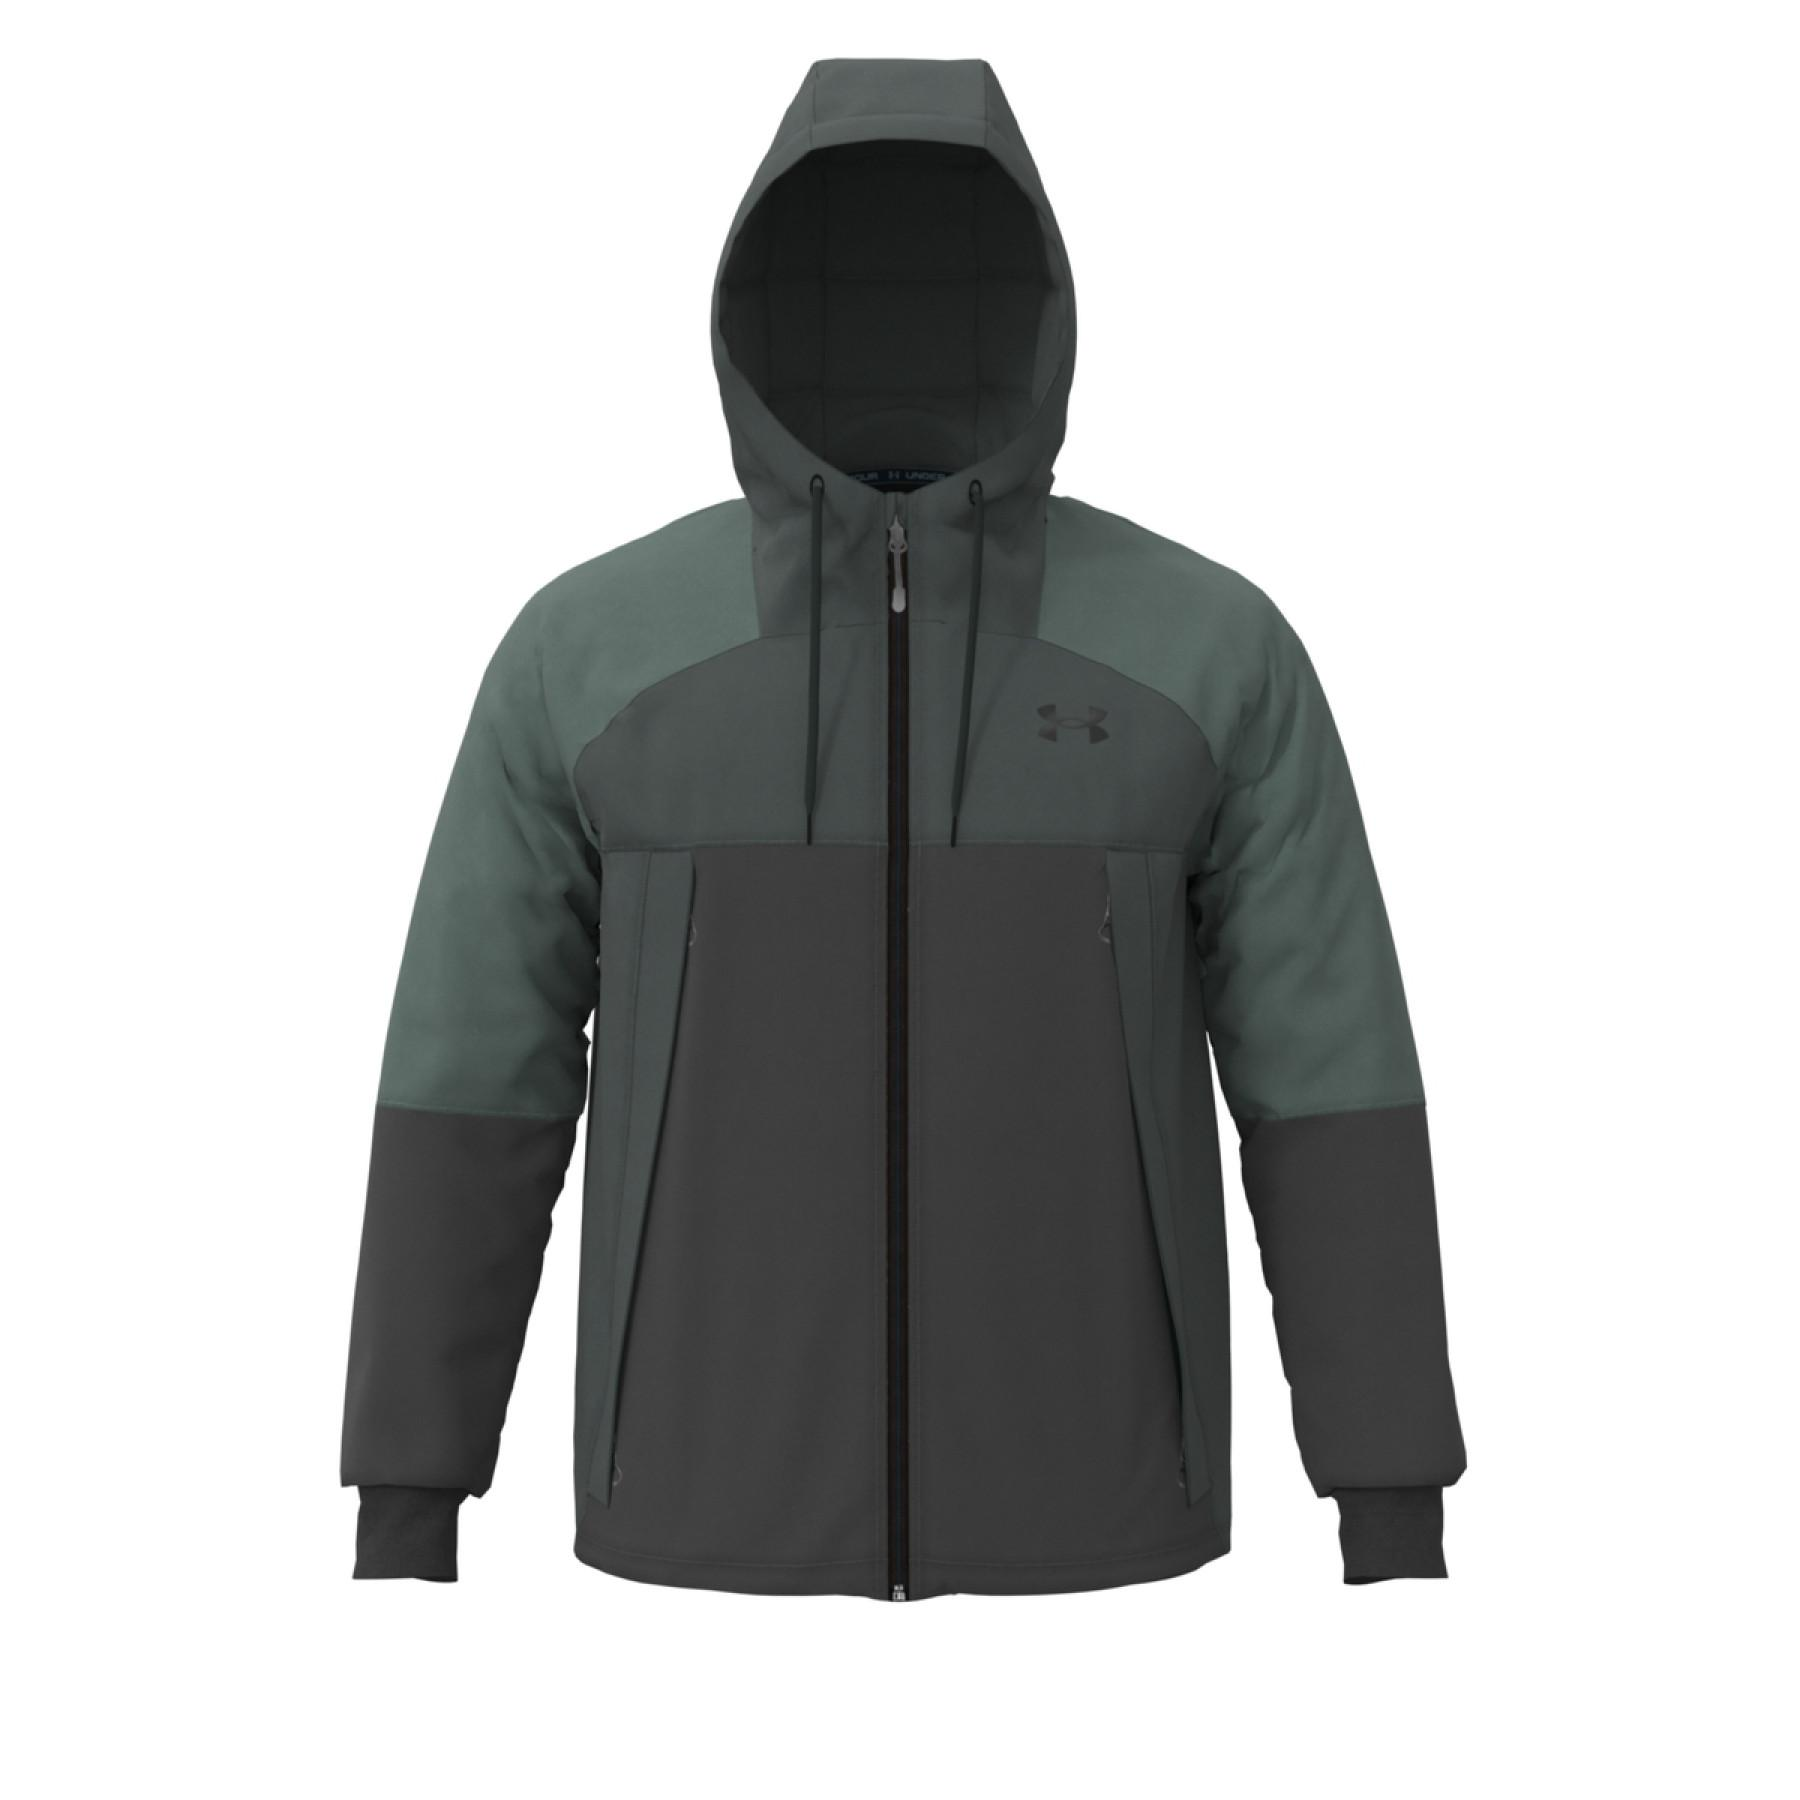 Under Armour Spring Insulate Jacket